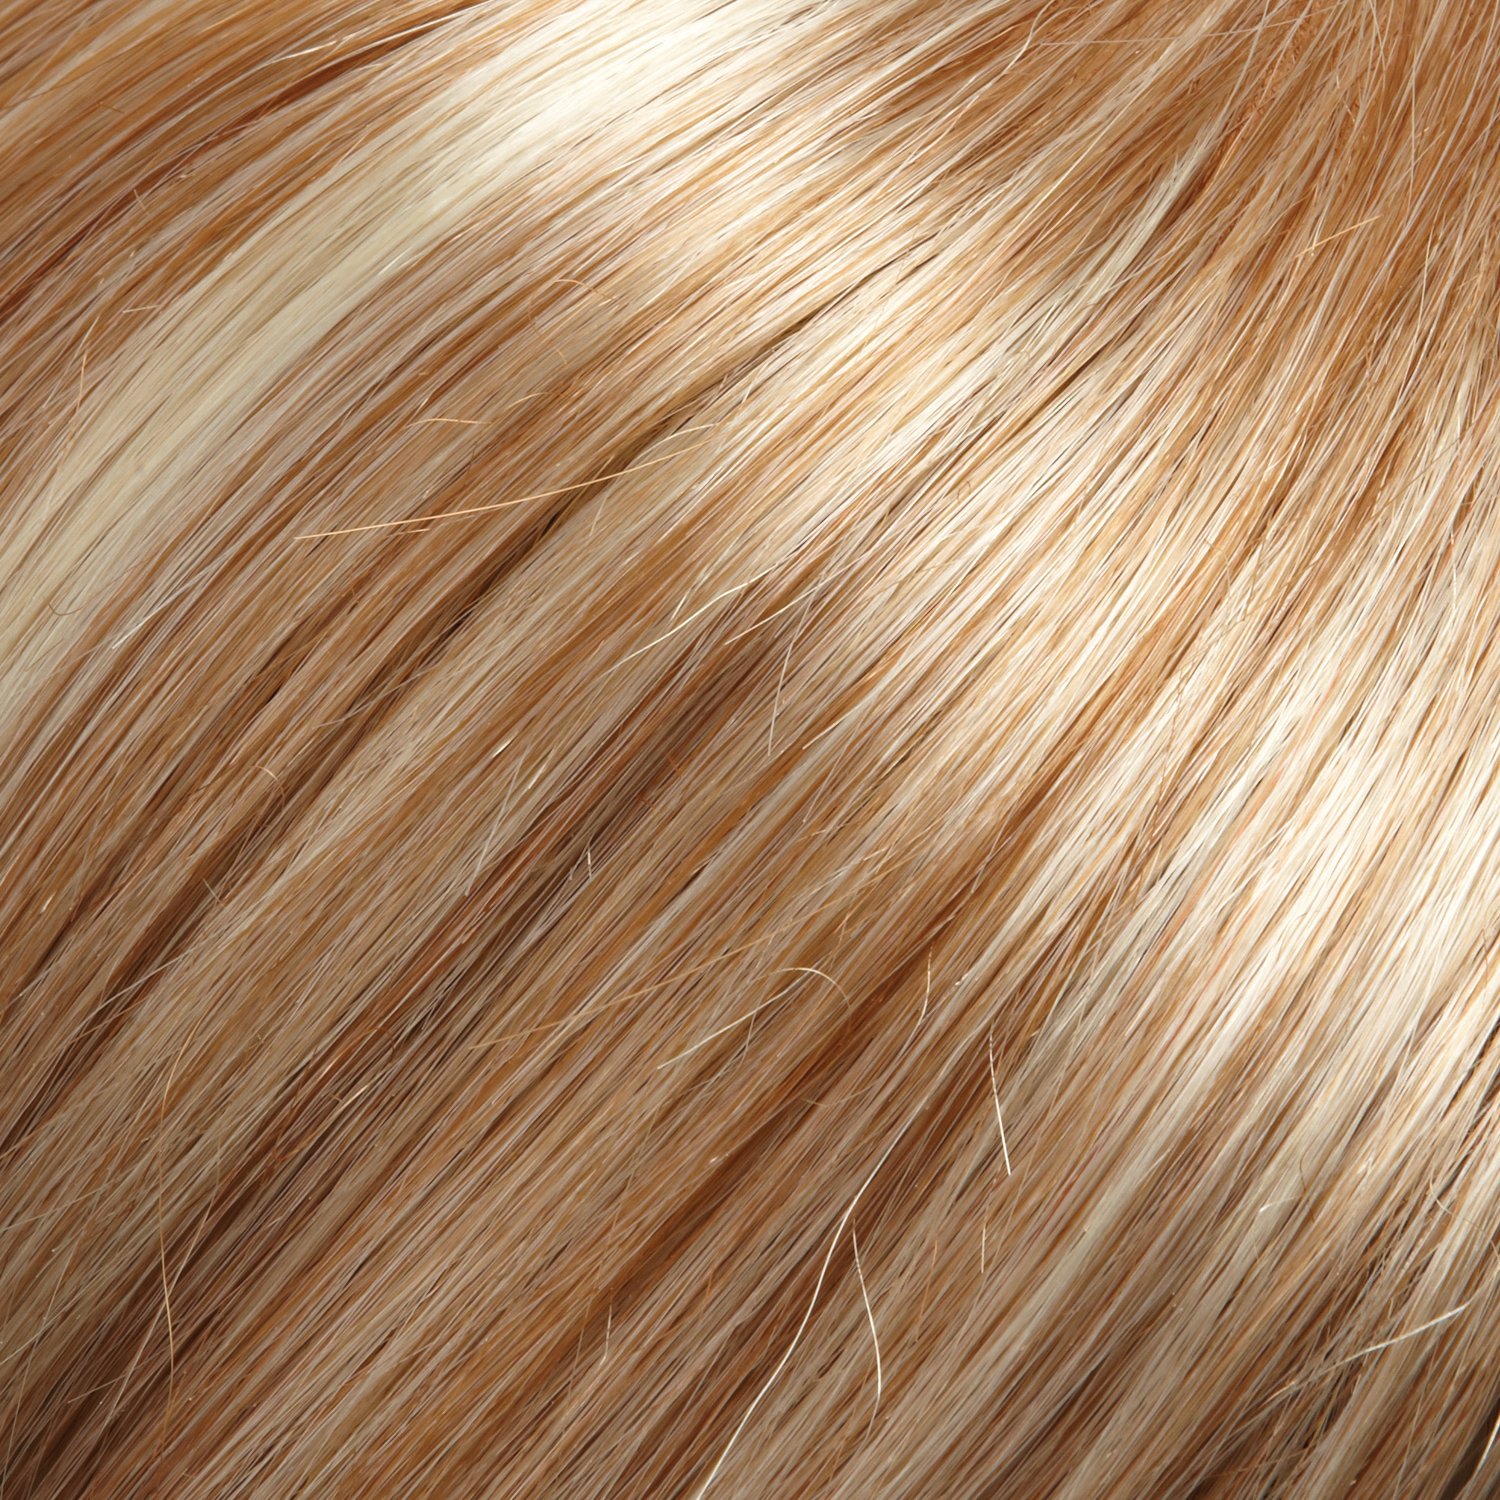 27RH613 - Medium Red-Golden Blonde with 33% Pale Natural Golden Blonde Highlights